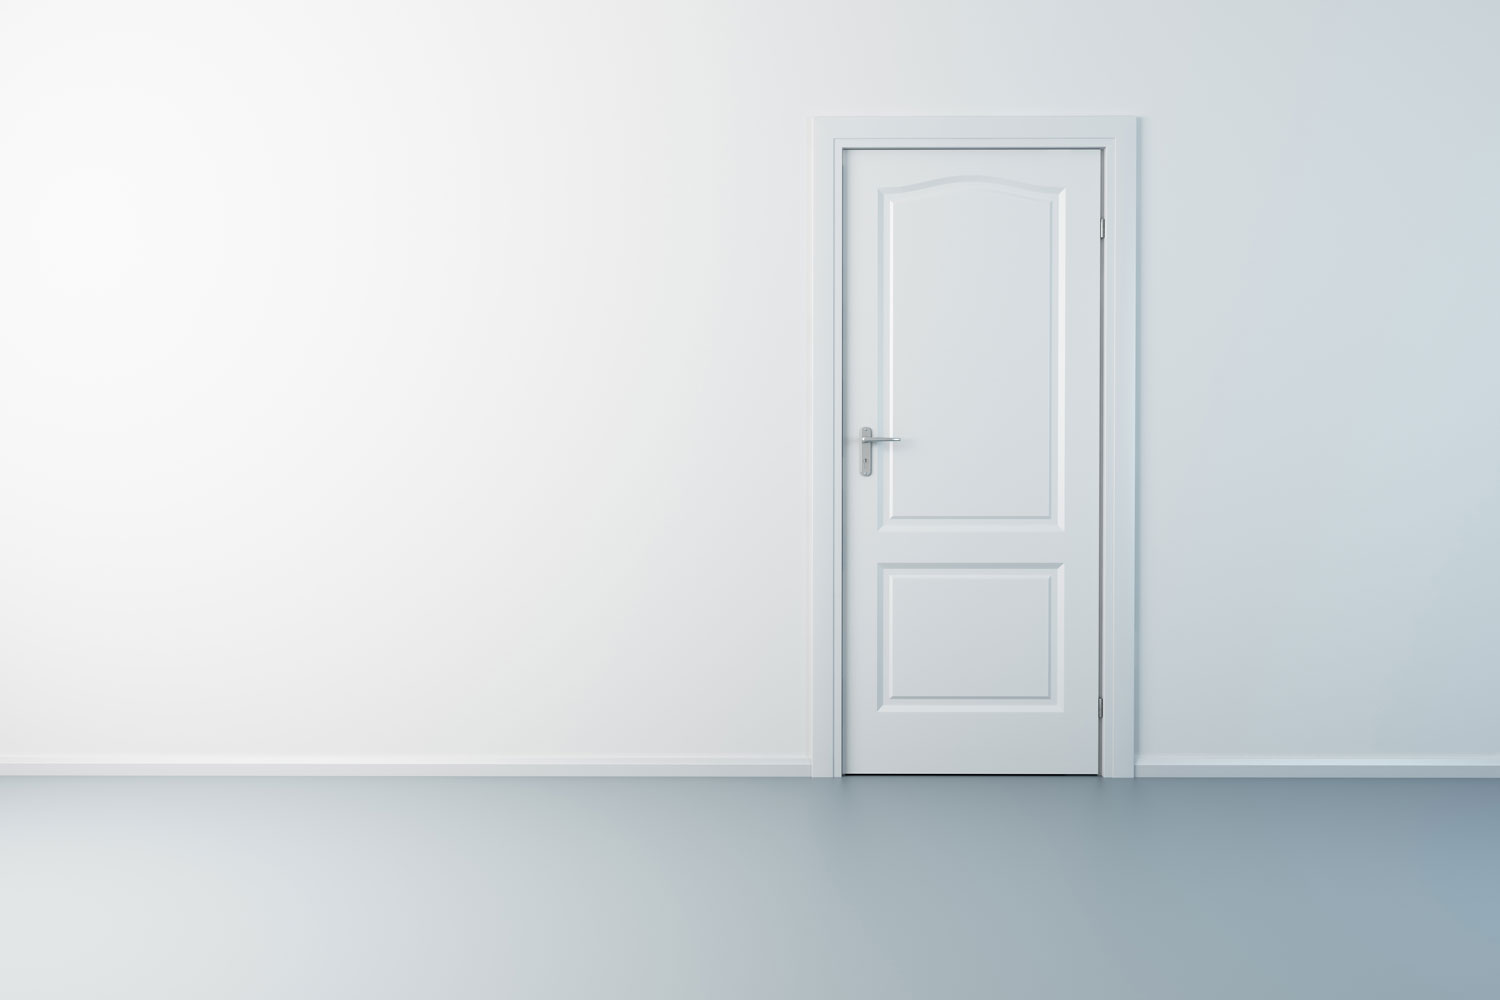 A white painted door inside an empty living room